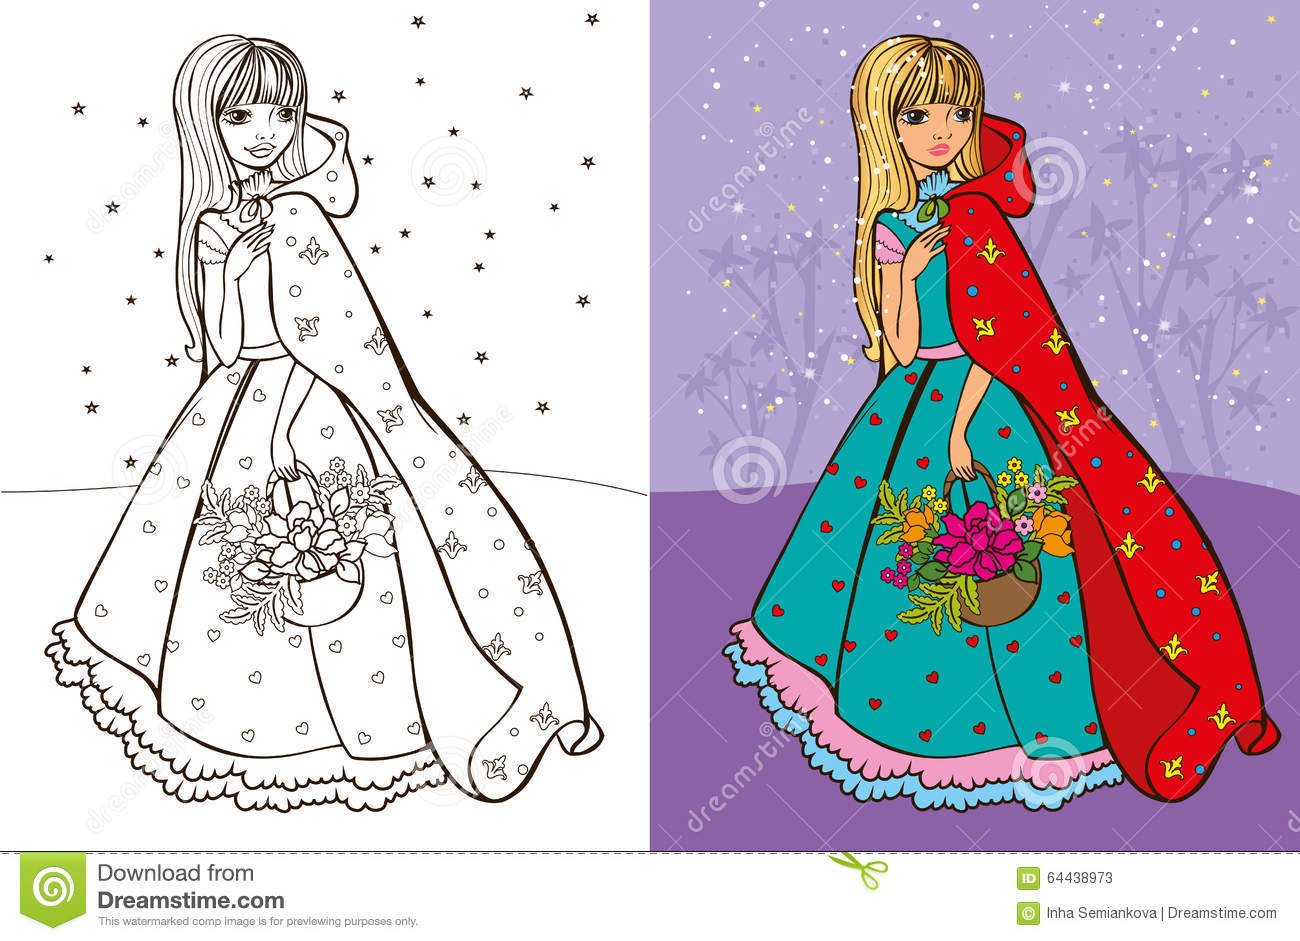 Colouring Book Of Girl In Red Coat Stock Vector - Image: 64438973